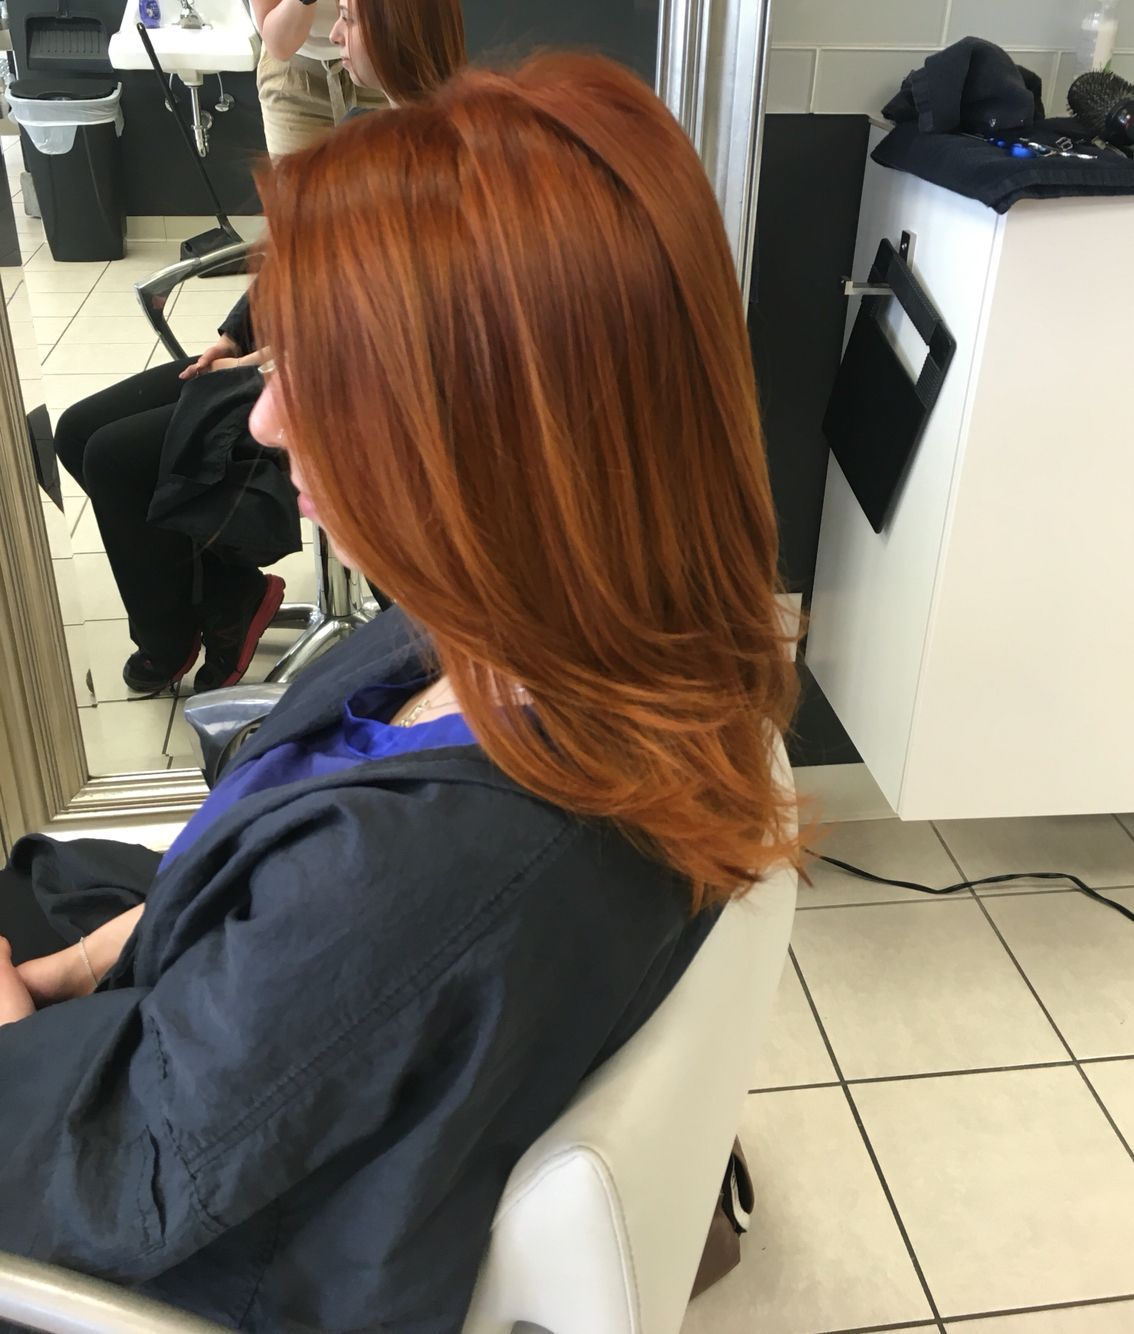 Awesome goldred hair color using Wella 734  634  74 20 volume Glazed wit Awesome goldred hair color using Wella 734  634  74 20 volume Glazed wit